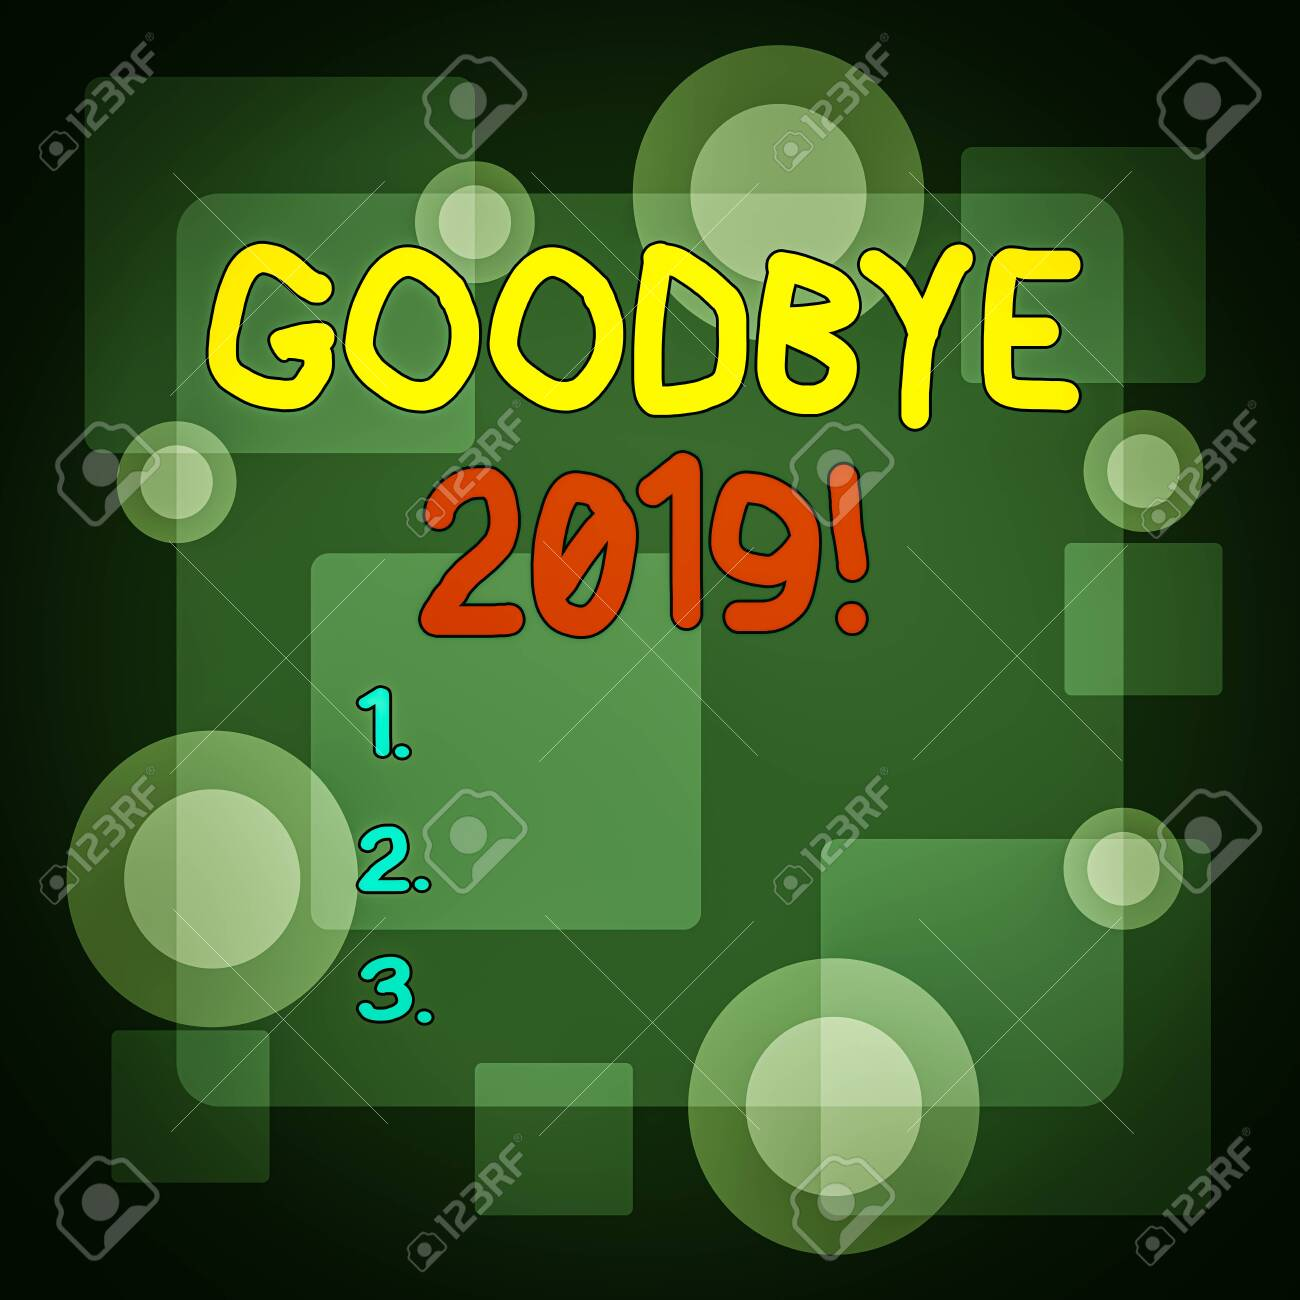 Writing note showing Goodbye 2019. Business concept for express good wishes when parting or at the end of last year Different Size SemiTransparent Squares and Concentric Circles Scattered - 136521417